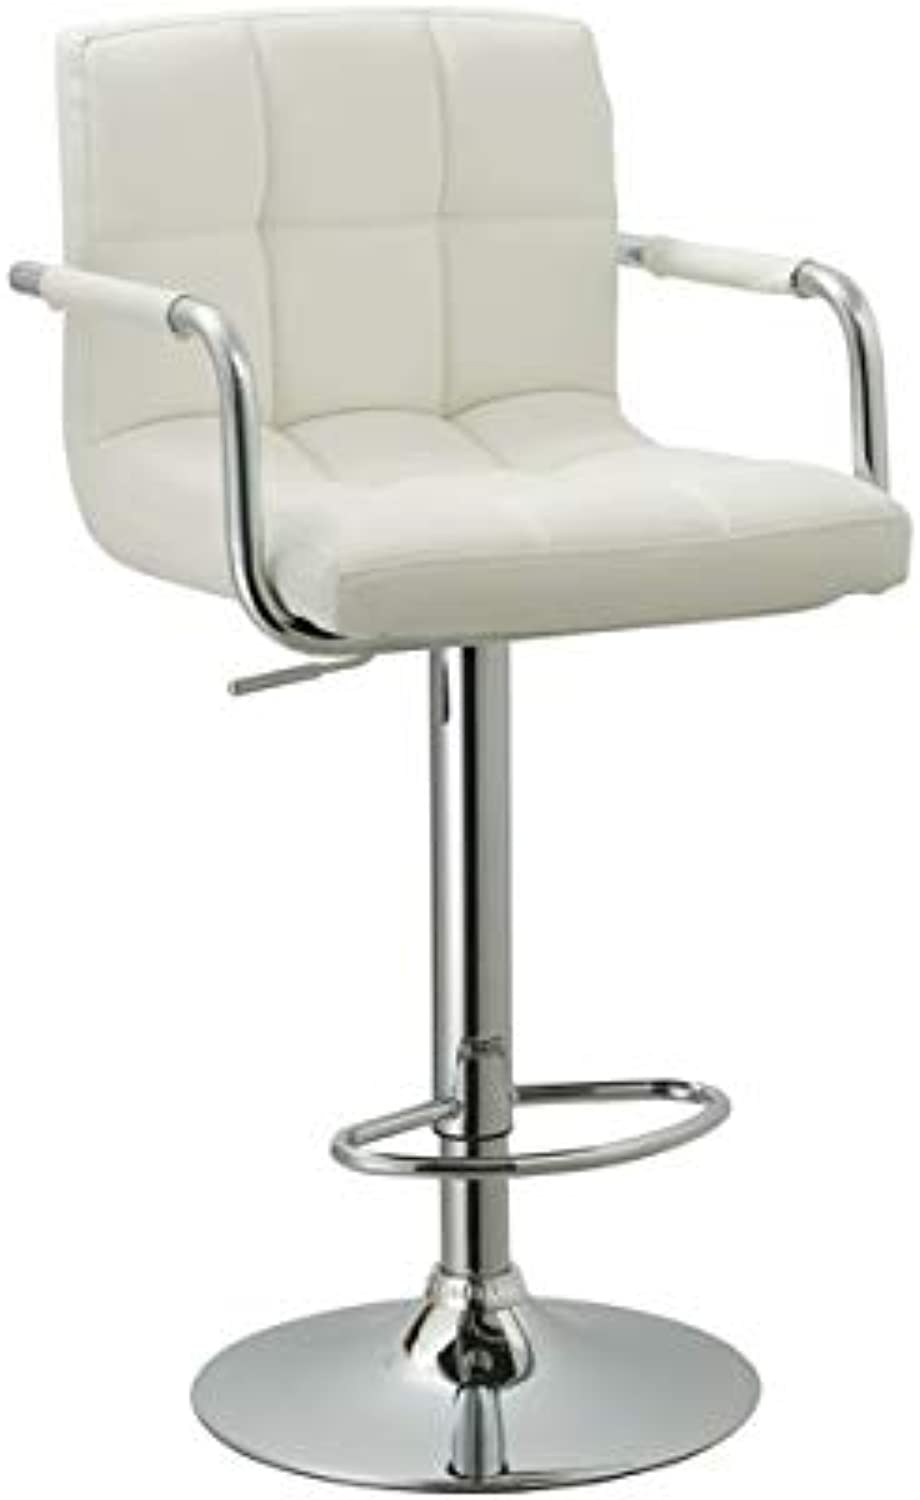 HomeRoots Furniture Contemporary Adjustable Swivel Arm Bar Stool with Cushion